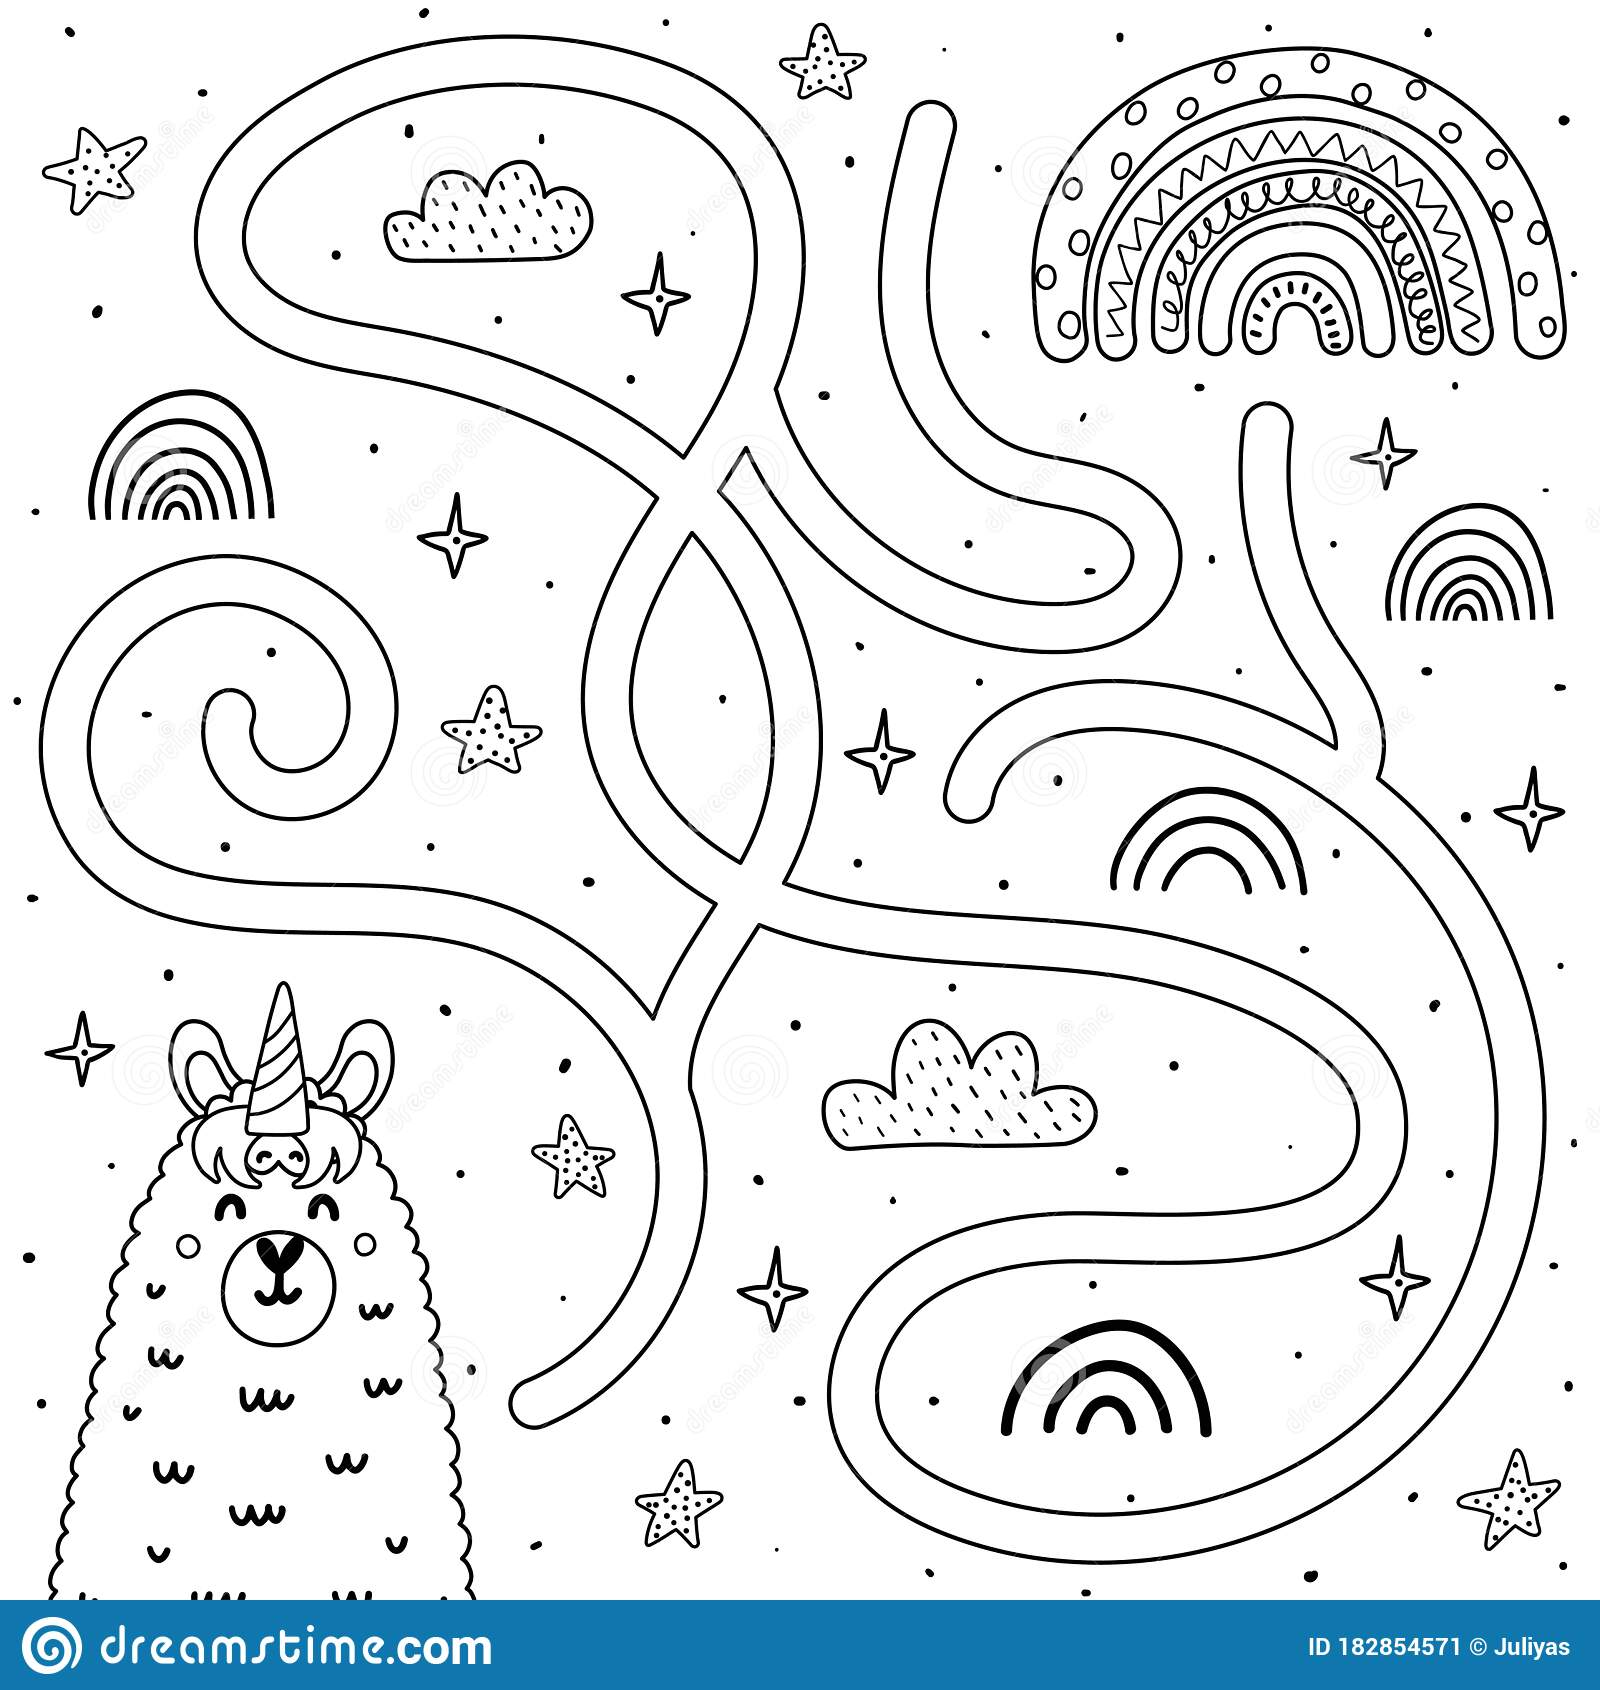 Rainbow Colouring Page Stock Illustrations 63 Rainbow Colouring Page Stock Illustrations Vectors Clipart Dreamstime